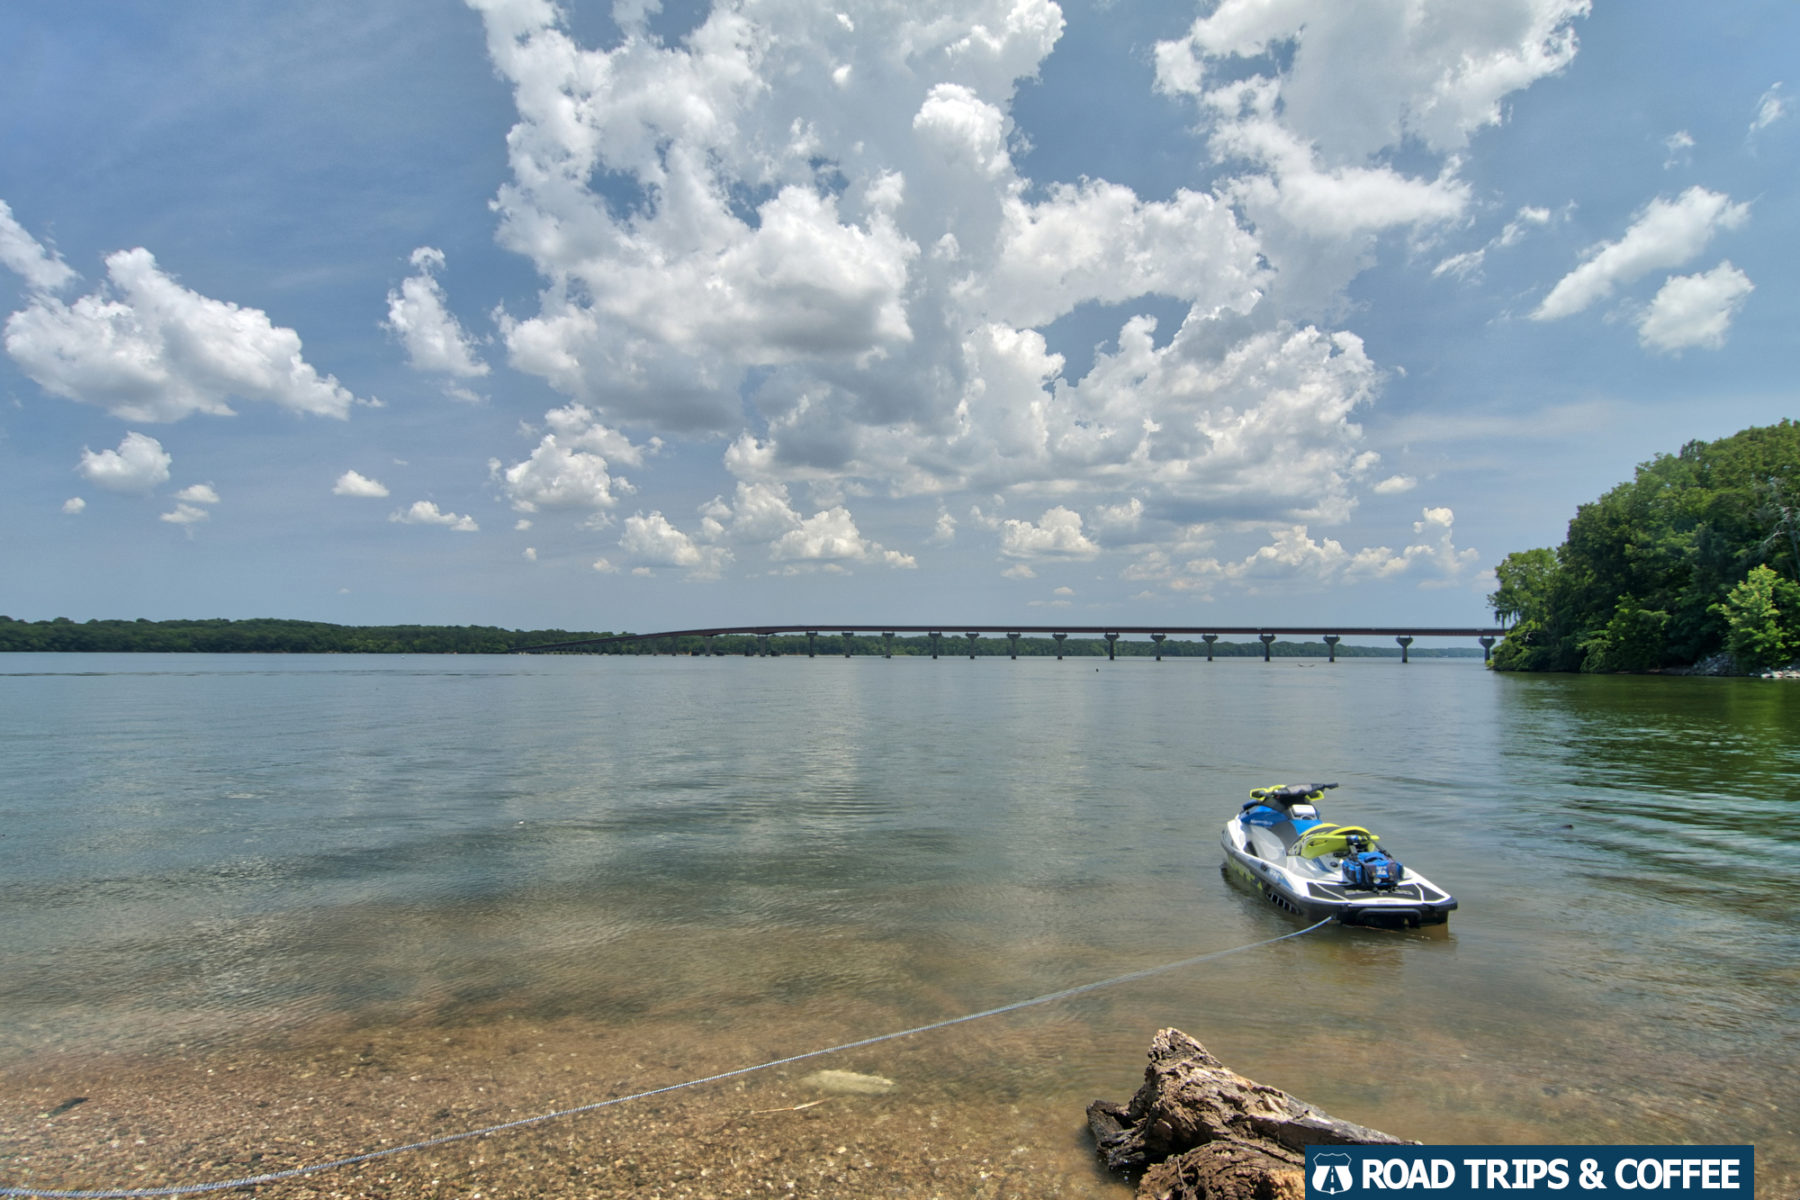 A jet ski anchored to the shore of the Tennessee River at Colbert Ferry on the Natchez Trace Parkway in Alabama